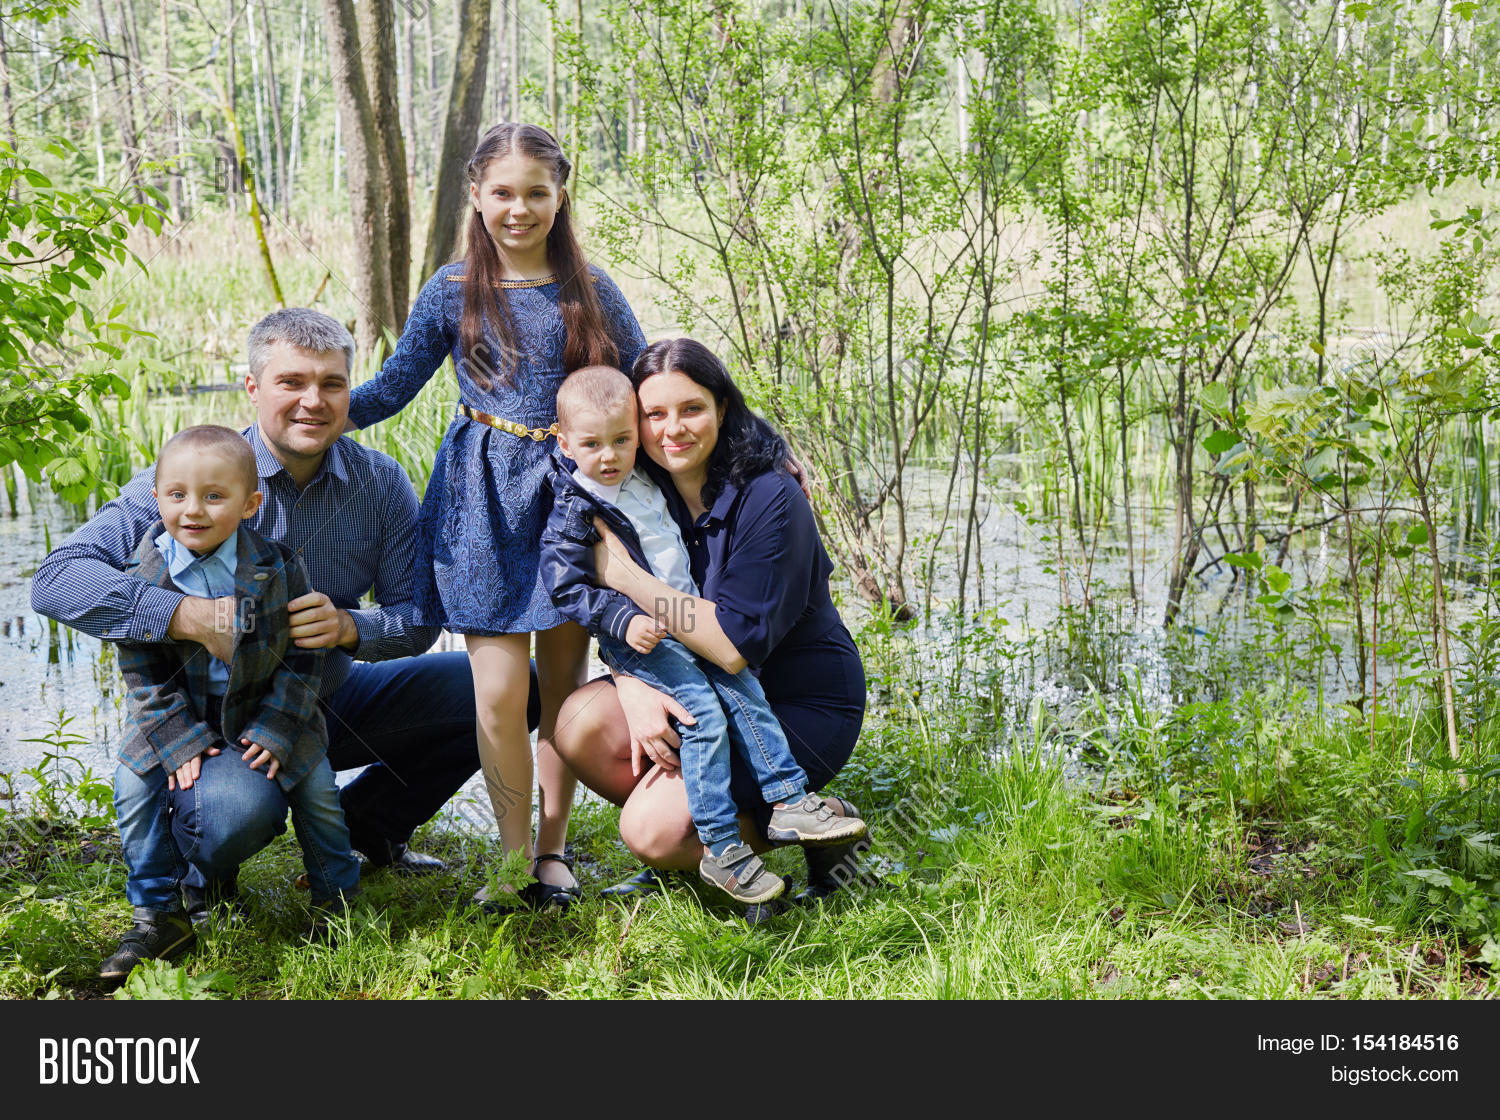 Family Of Five Poses On Boggy Pond Shore In Summer Park